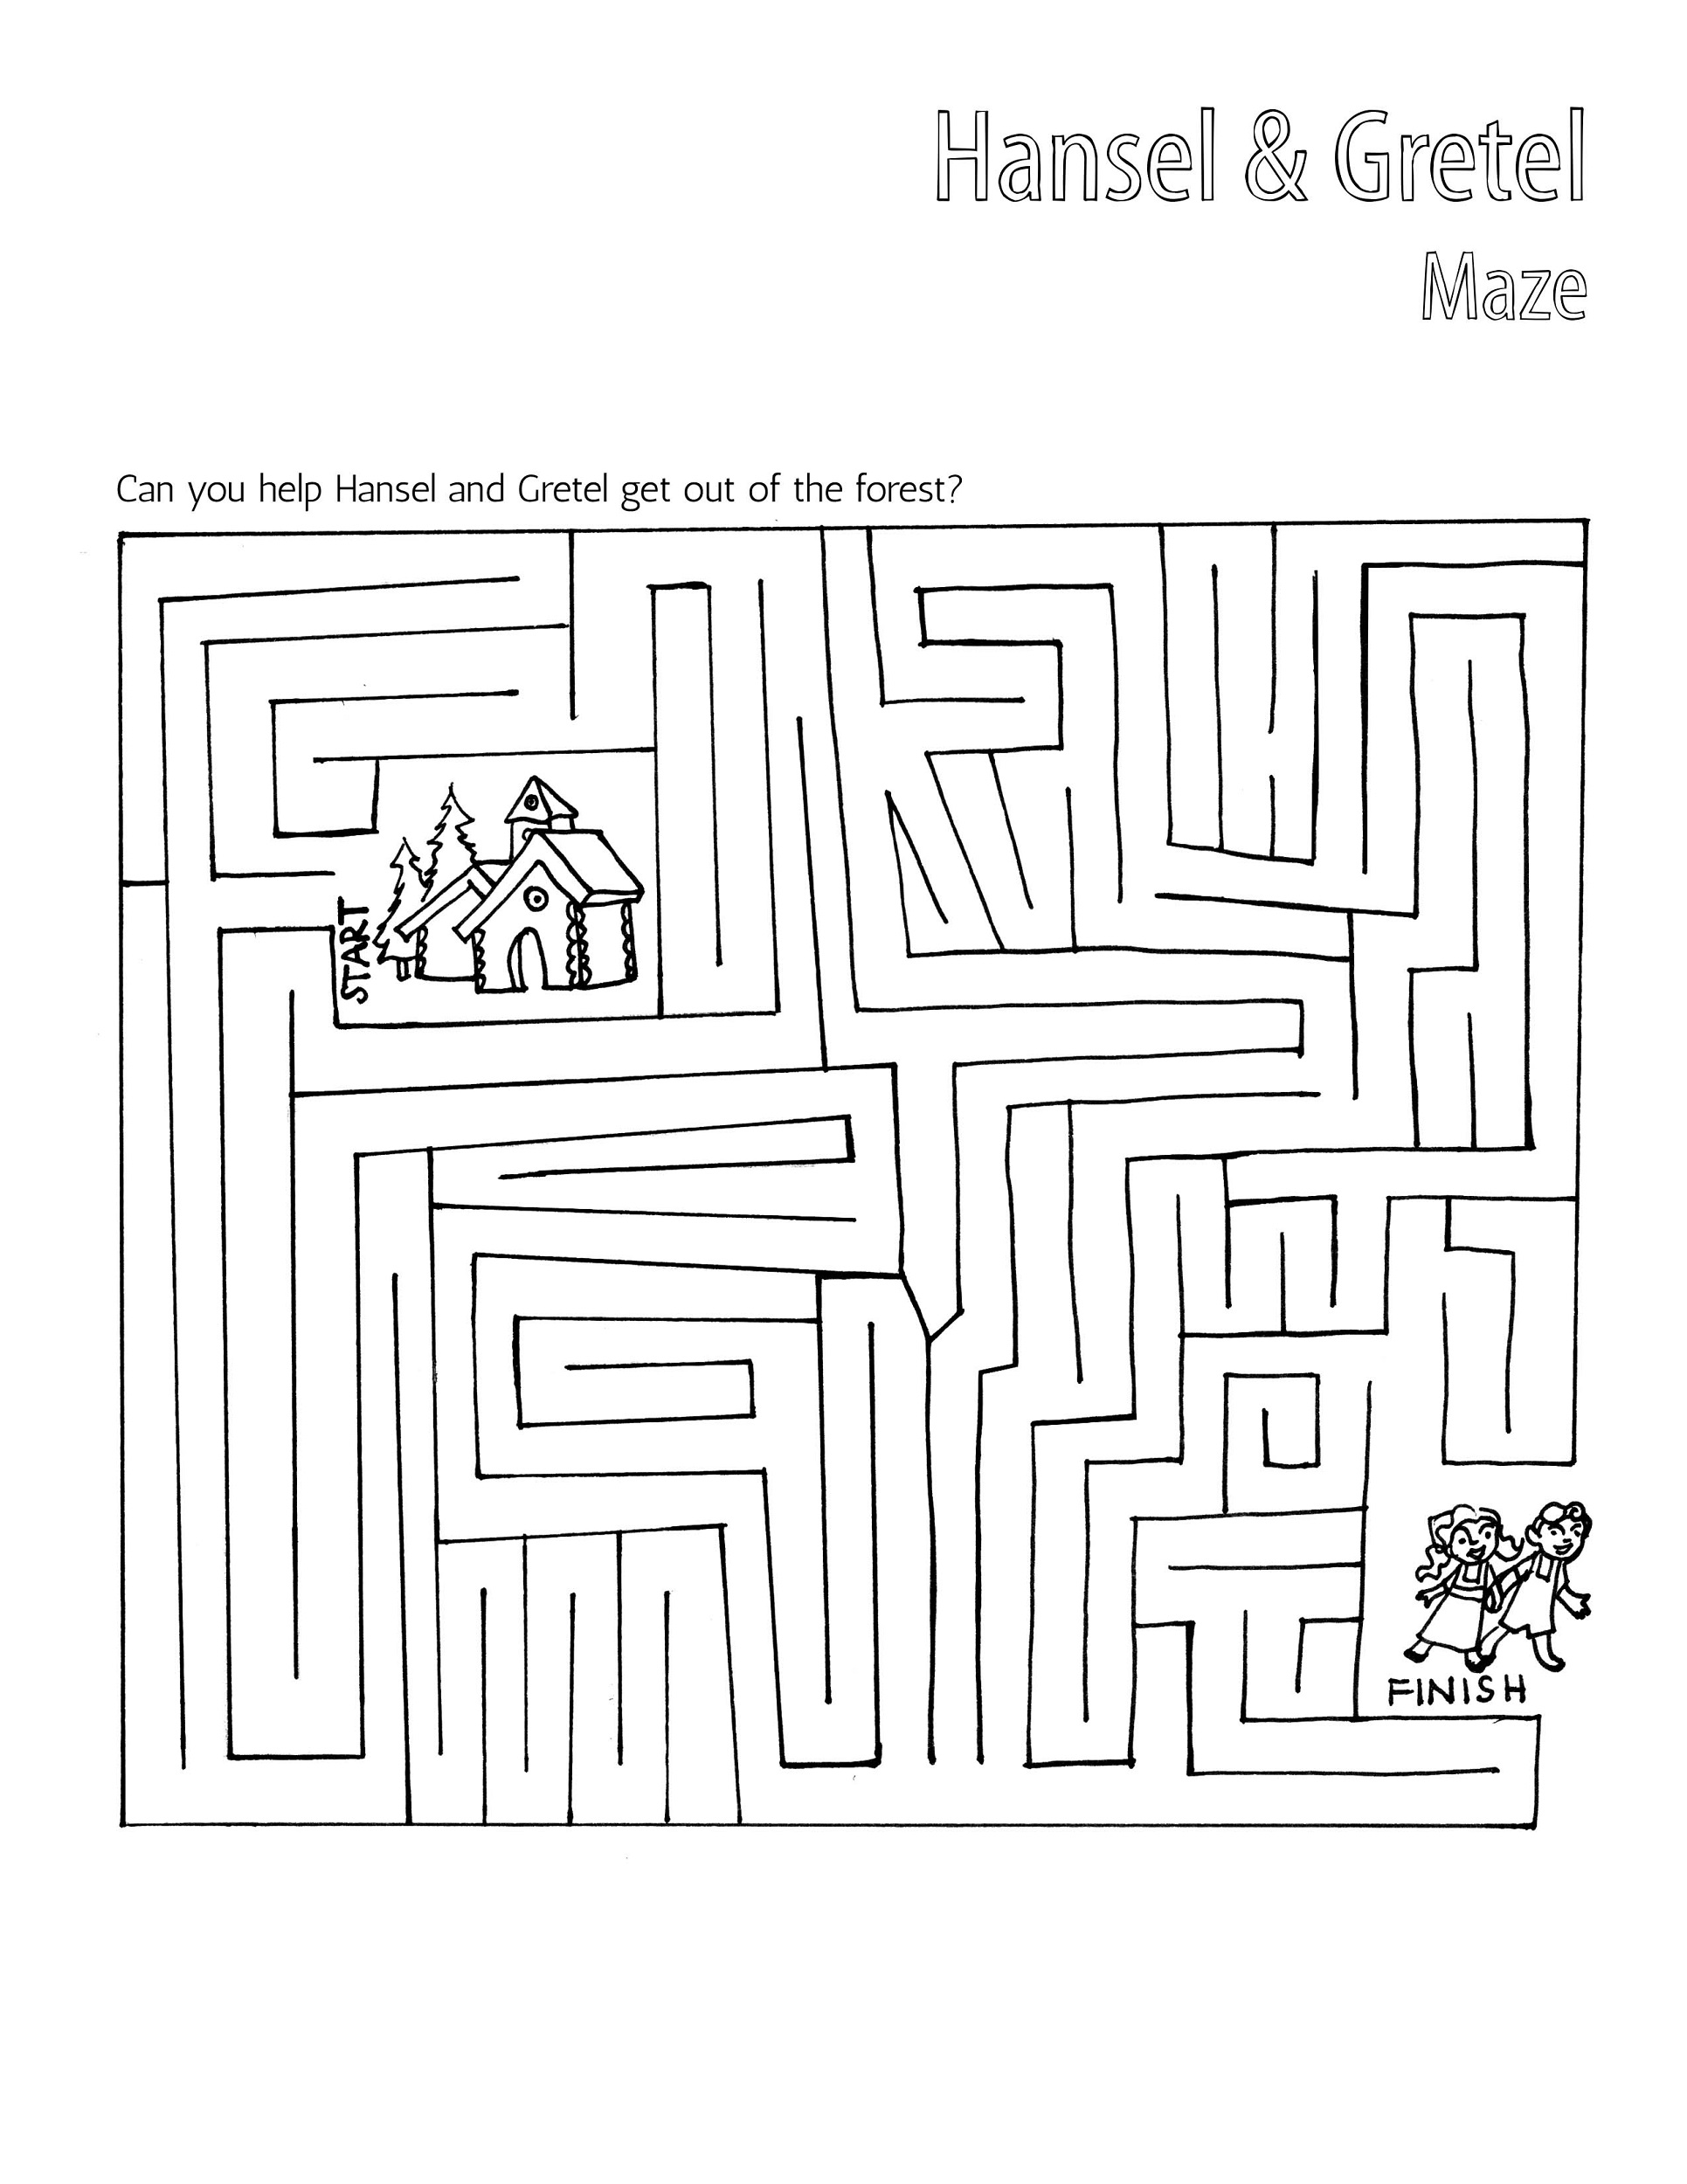 hansel-and-gretel-worksheets-maze